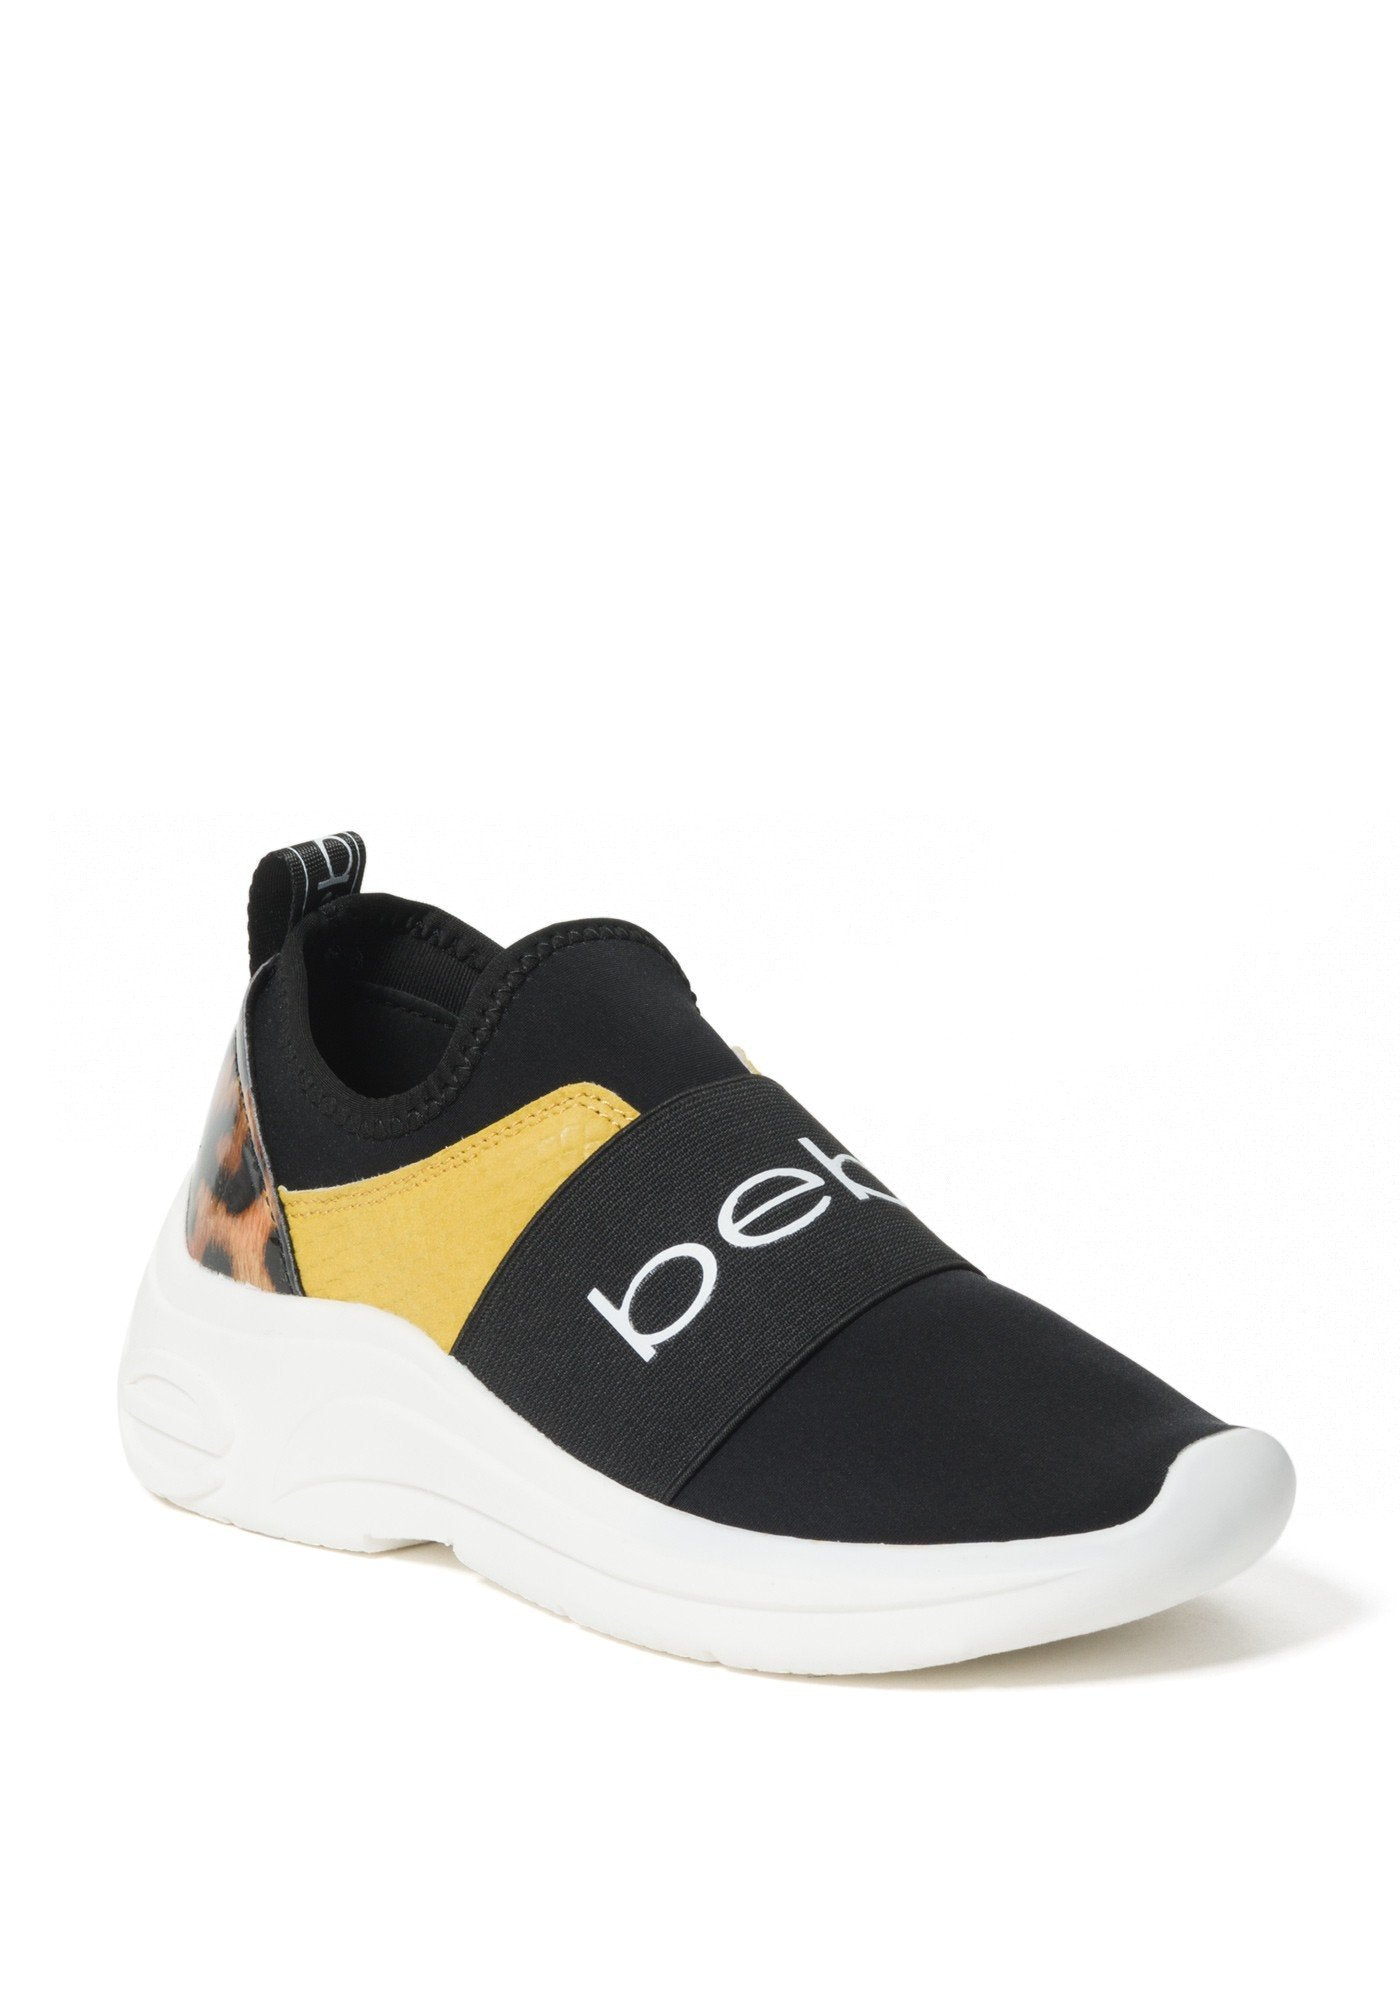 Bebe Women's Ladd-S Logo Slip On Sneakers, Size 6 in Yellow/Black Synthetic